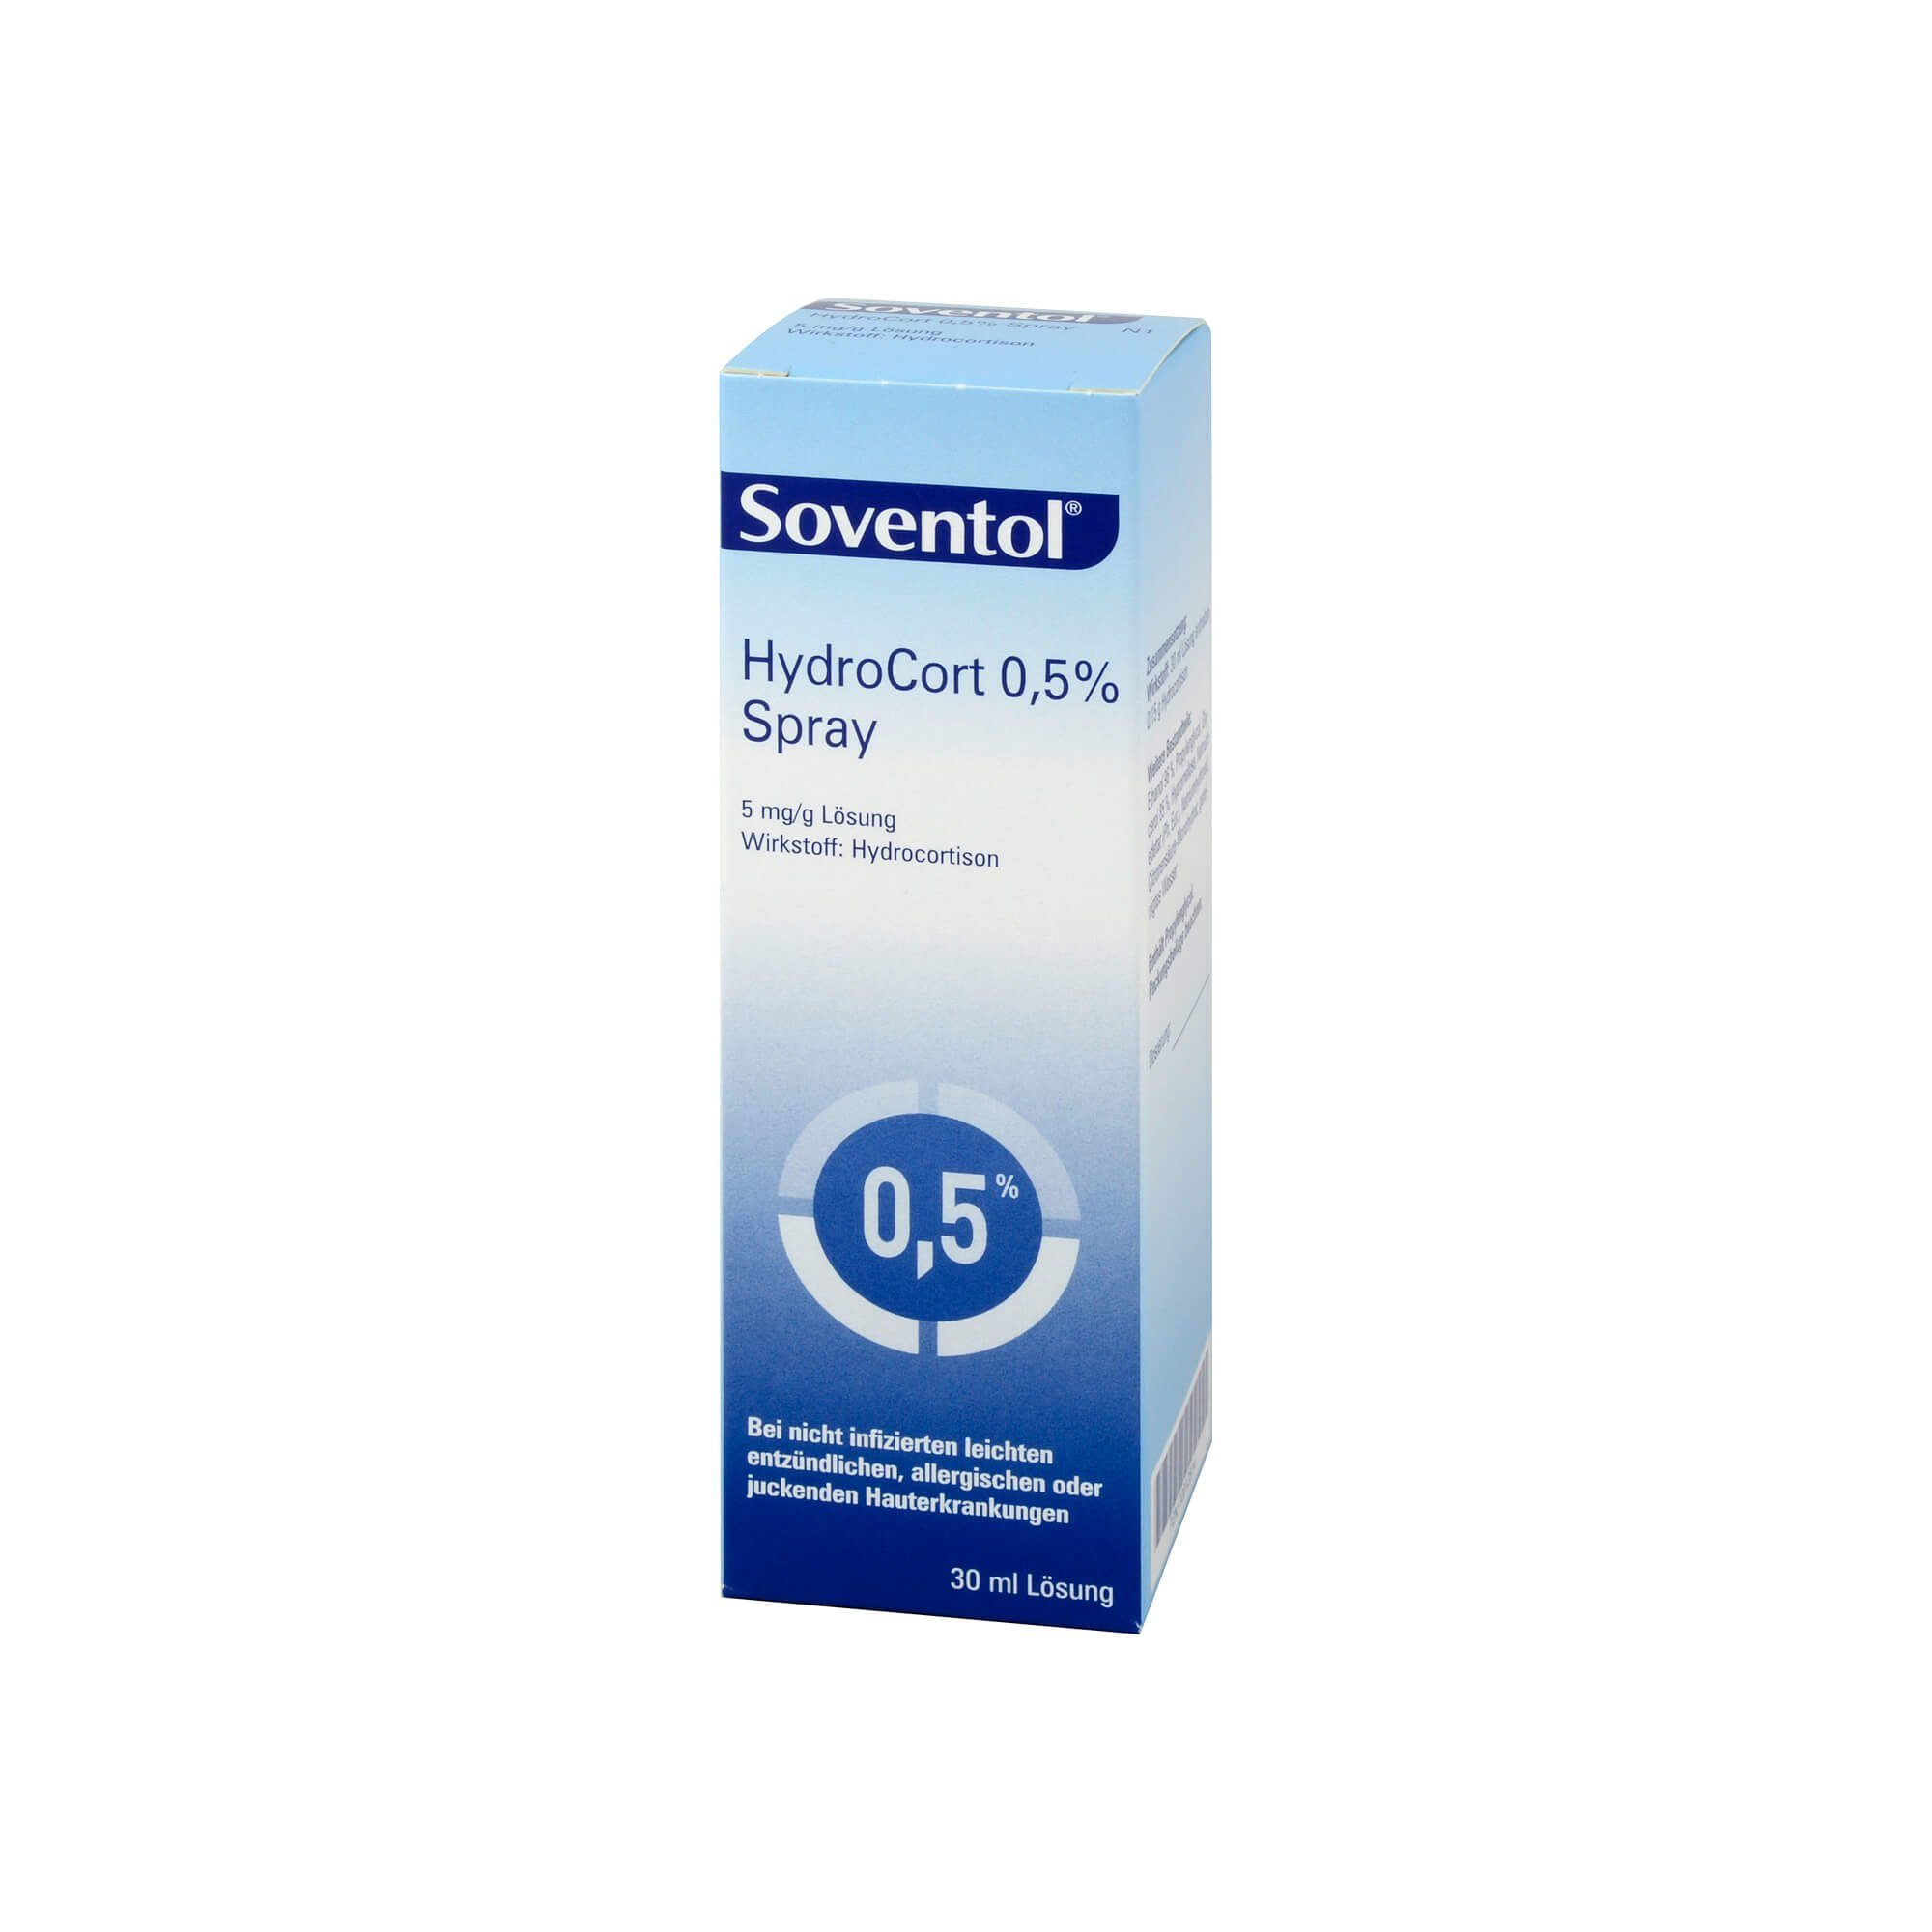 Soventol HydroCort 0,5 % Spray, 30 ml